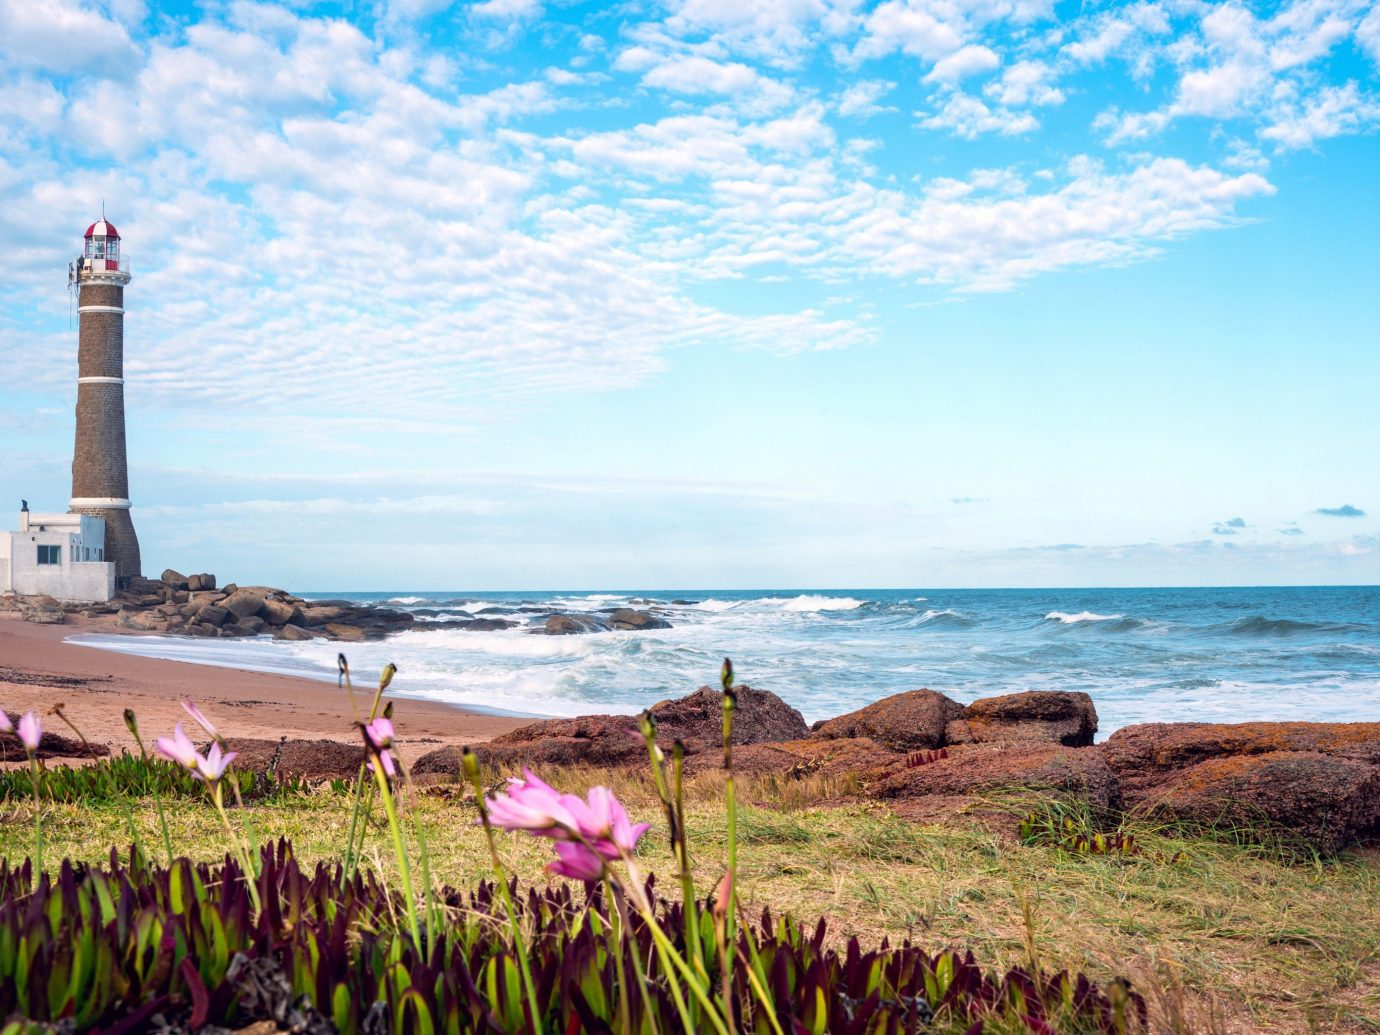 Travel Tips outdoor water grass shore Sea Coast tower Ocean body of water horizon lighthouse Nature Beach vacation cape bay cove overlooking stone